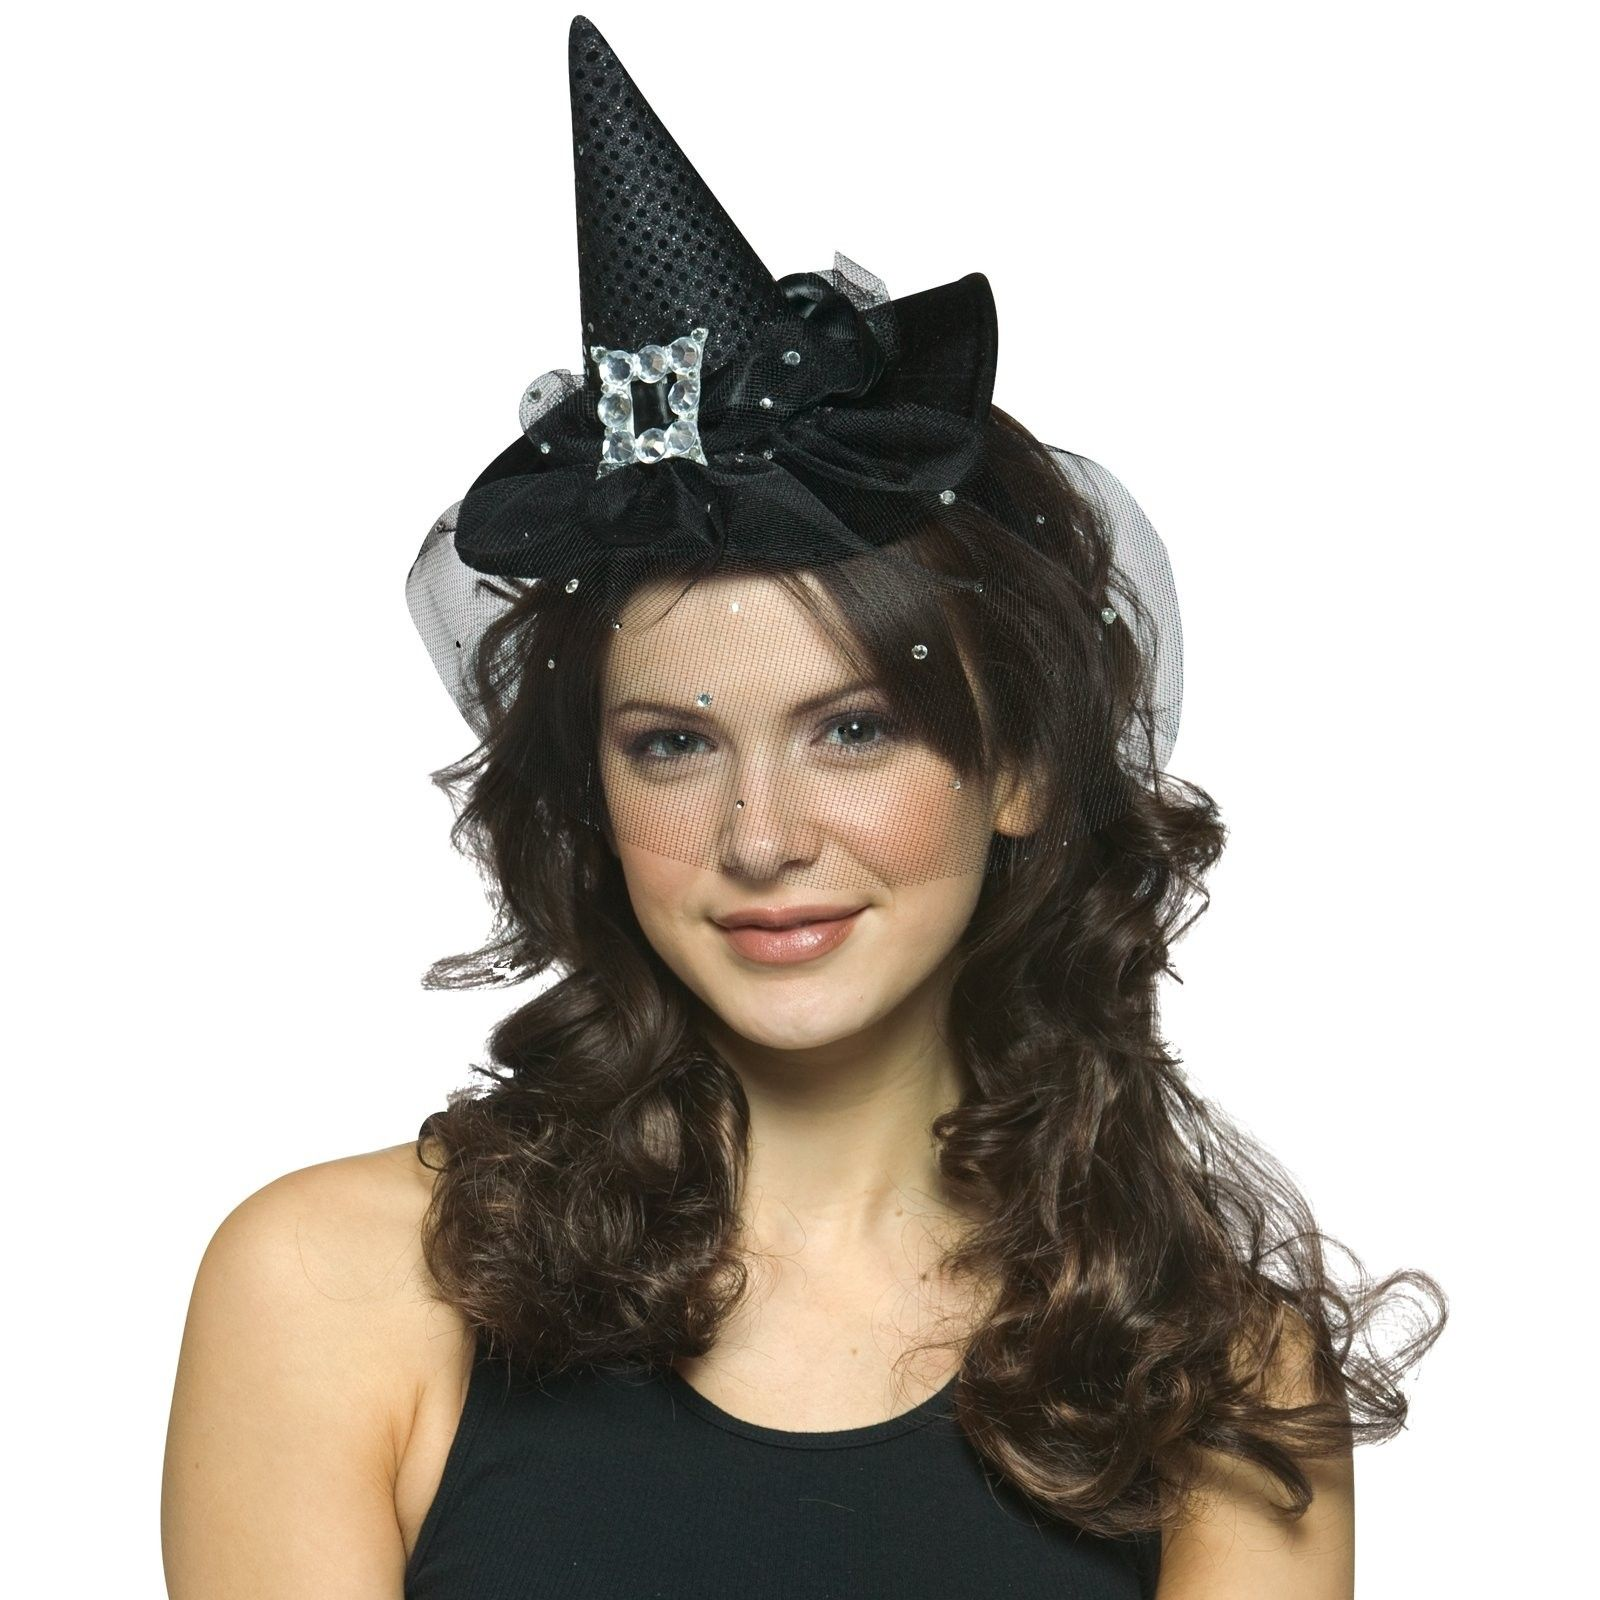 homemade witches costumes for adults - Google Search | Costume ...